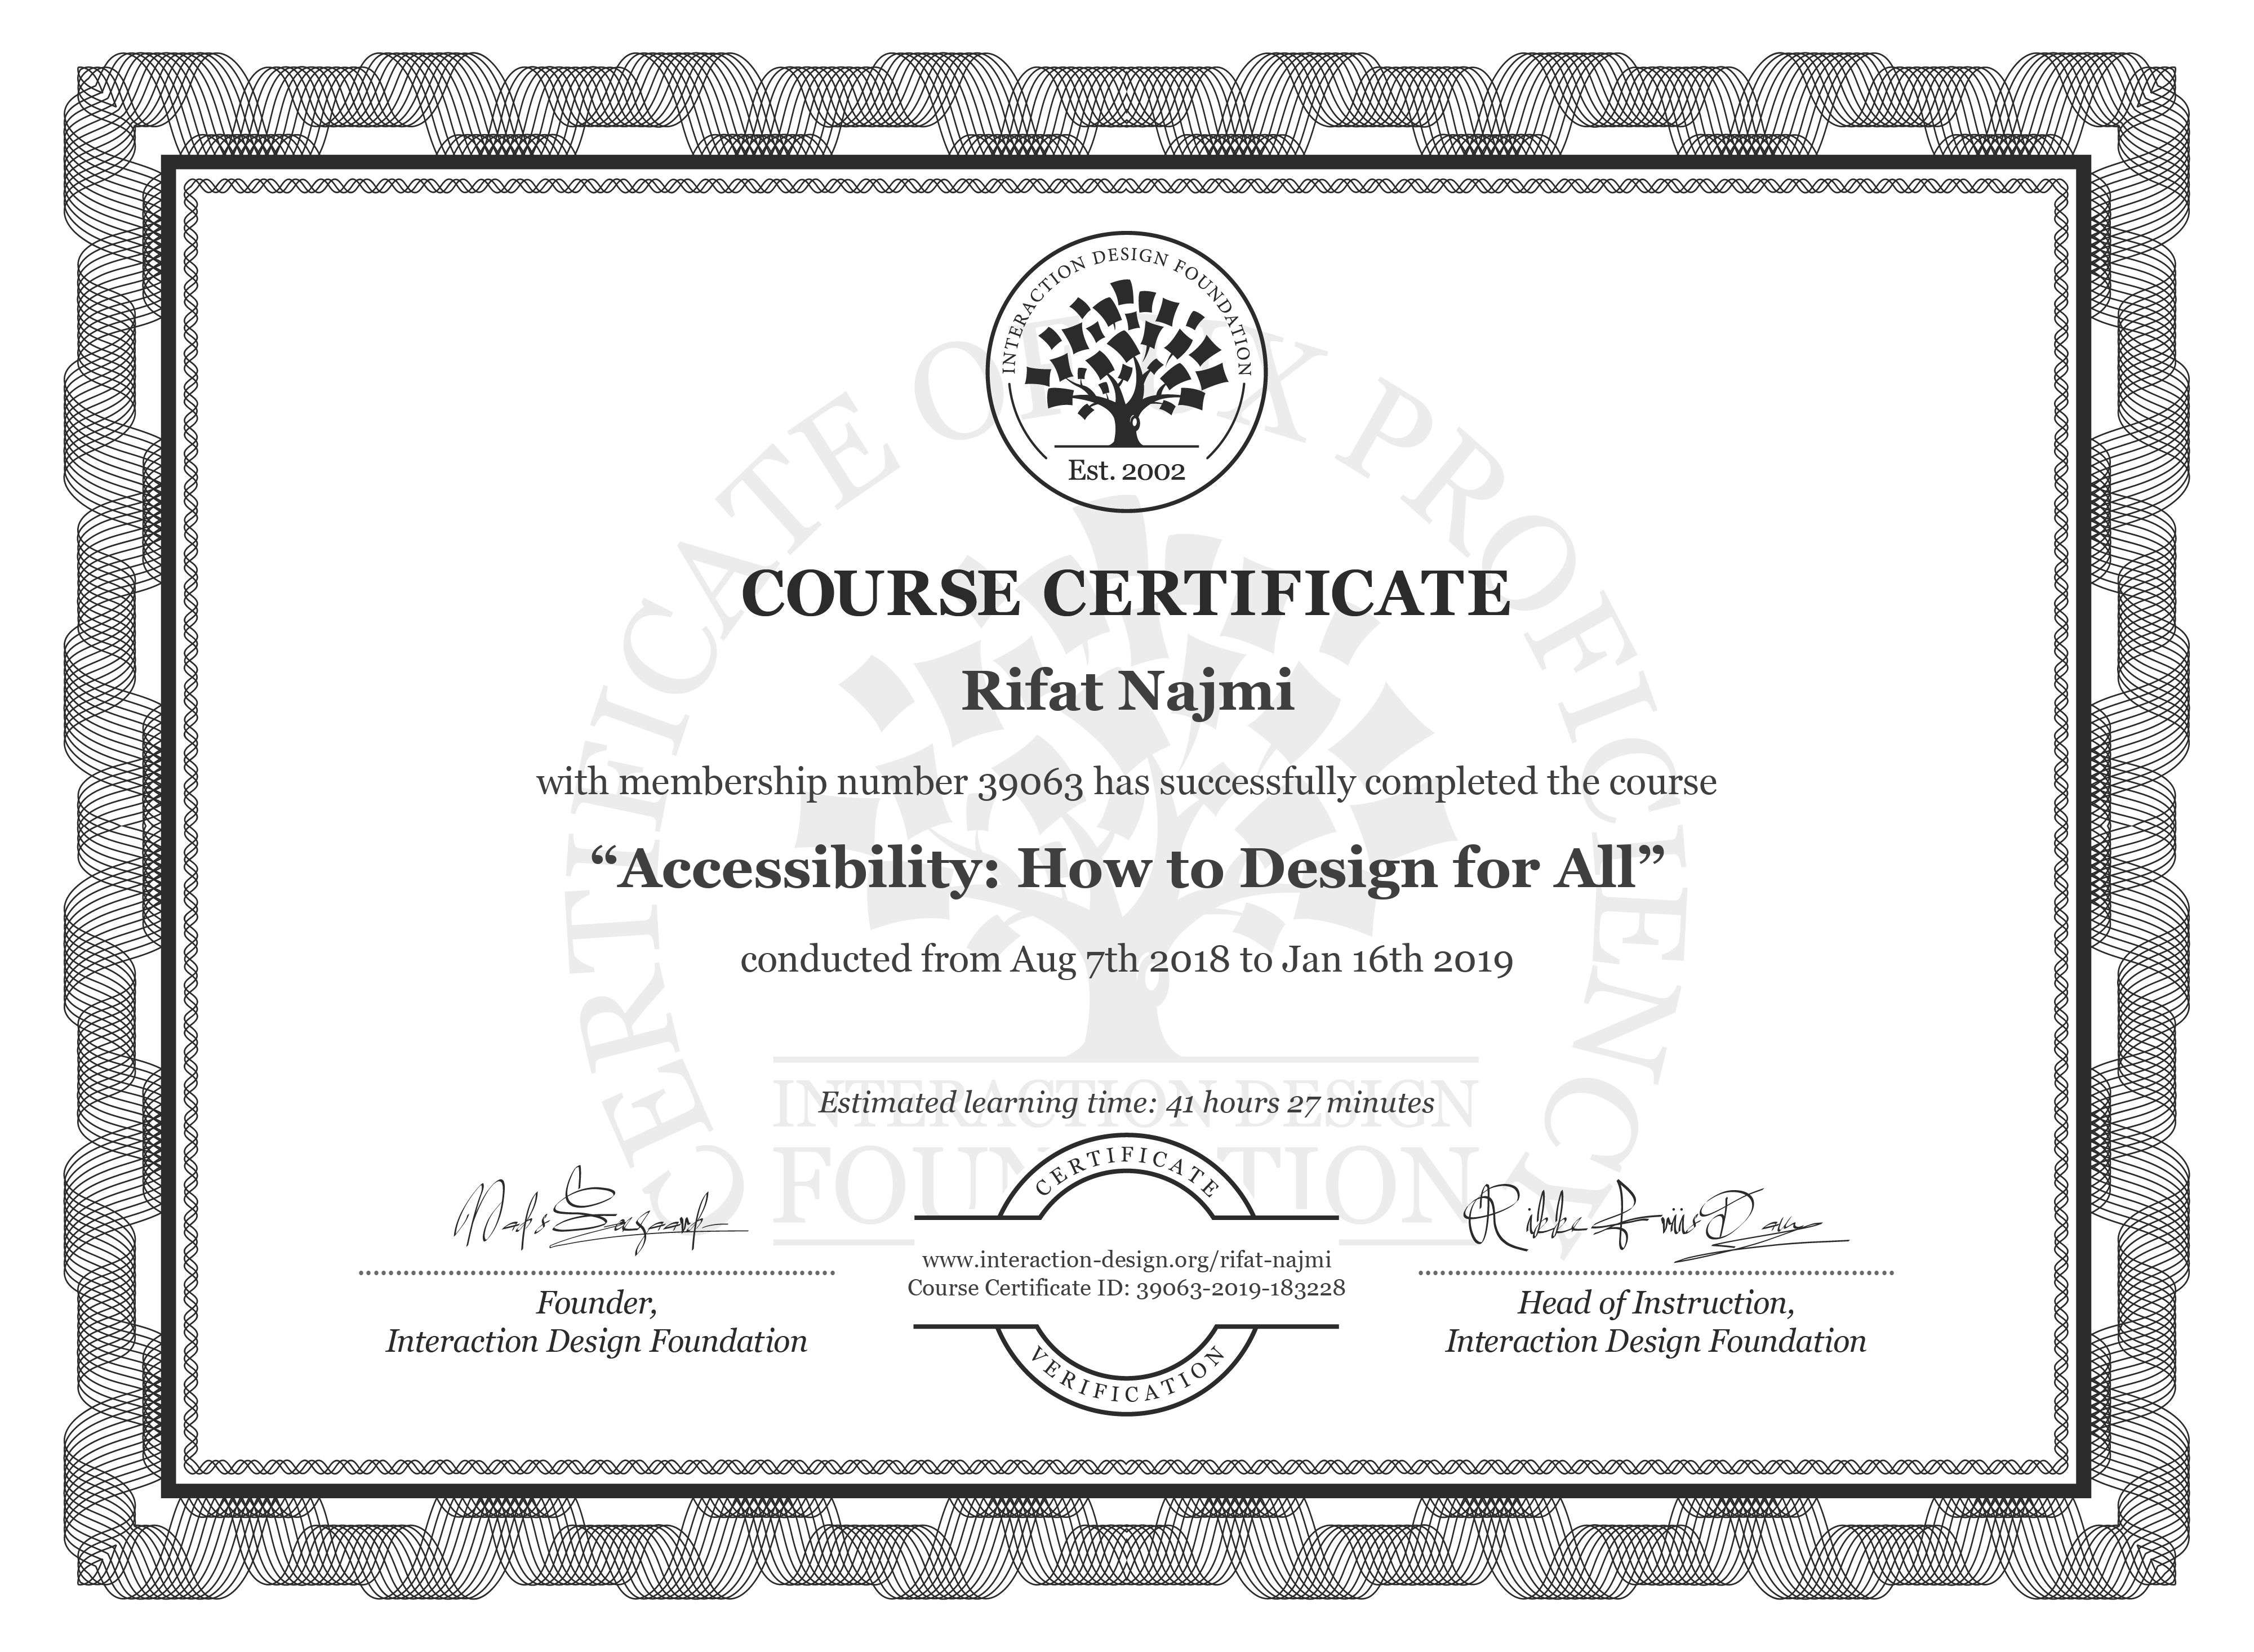 Rifat Najmi: Course Certificate - Accessibility: How to Design for All